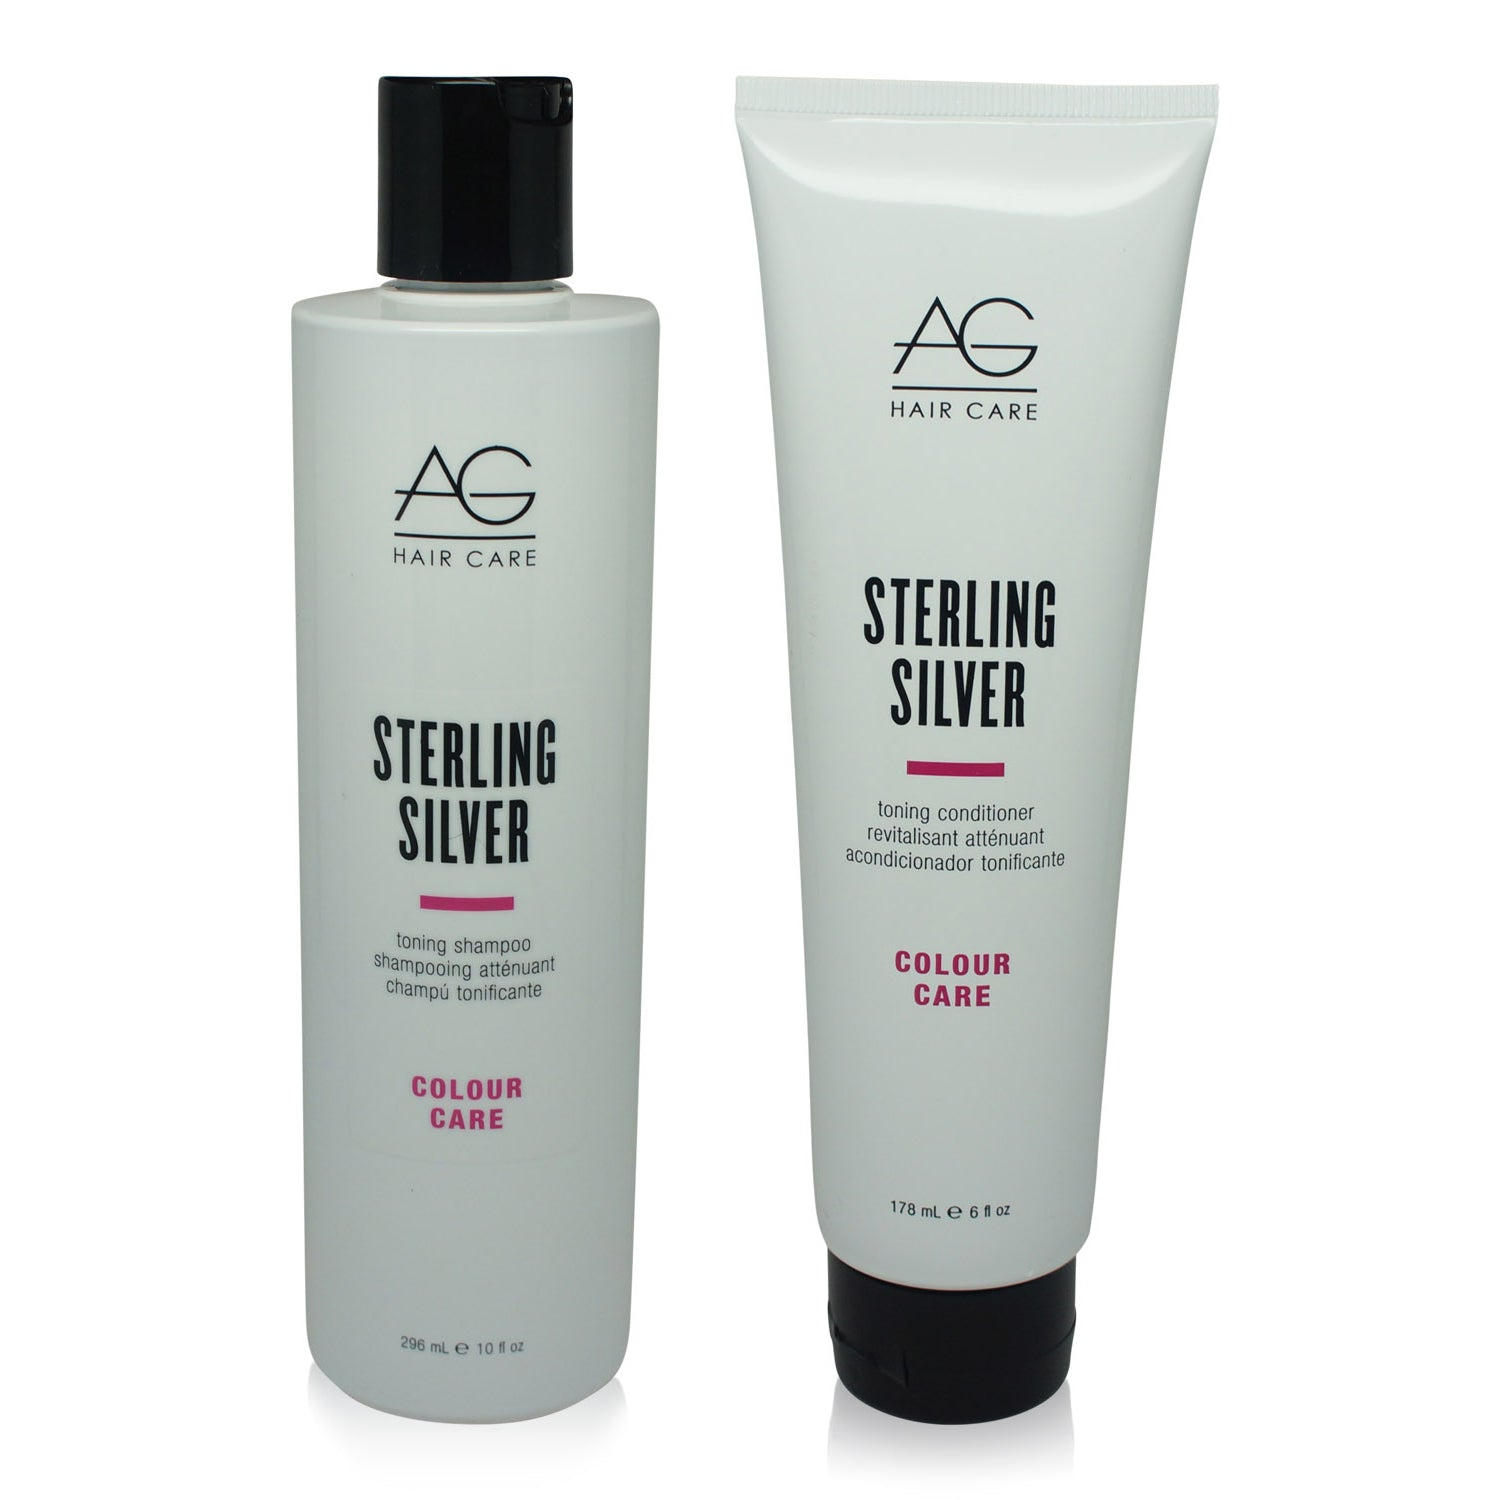 AGHAIR ~ STERLING SILVER TONING SHAMPOO 10 OZ & CONDITIONER 6 OZ  ~ COMBO PACK